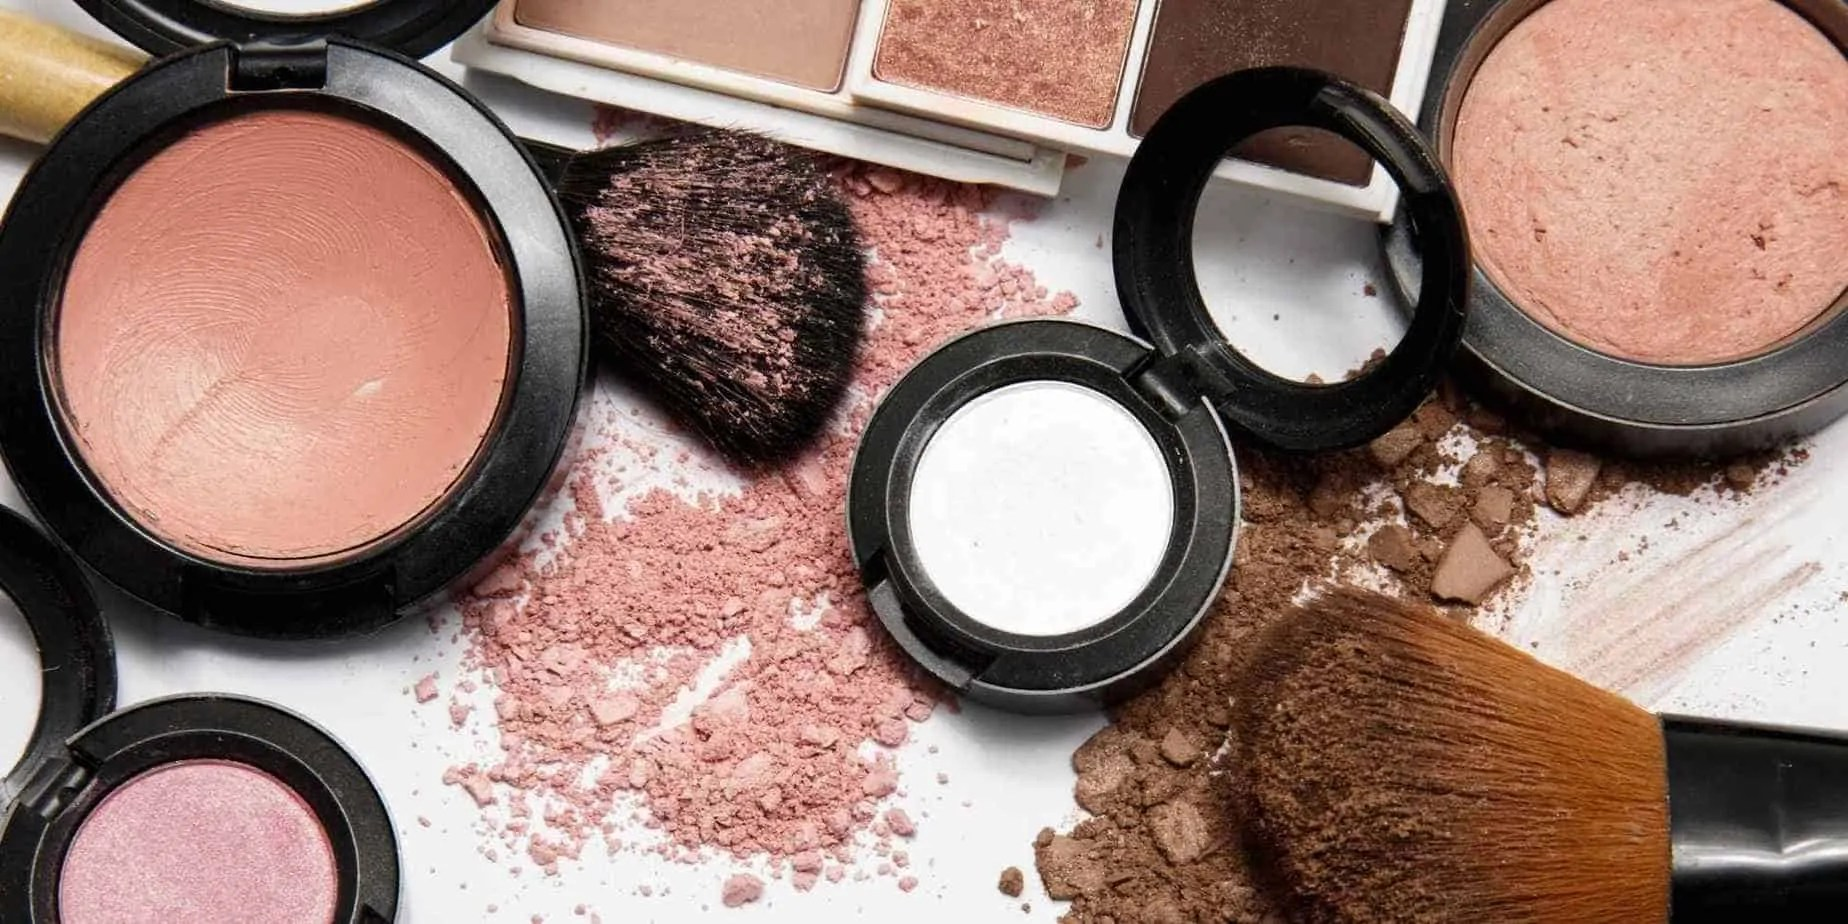 The Real Makeup Expiration Date For Every Product In Your Makeup Bag